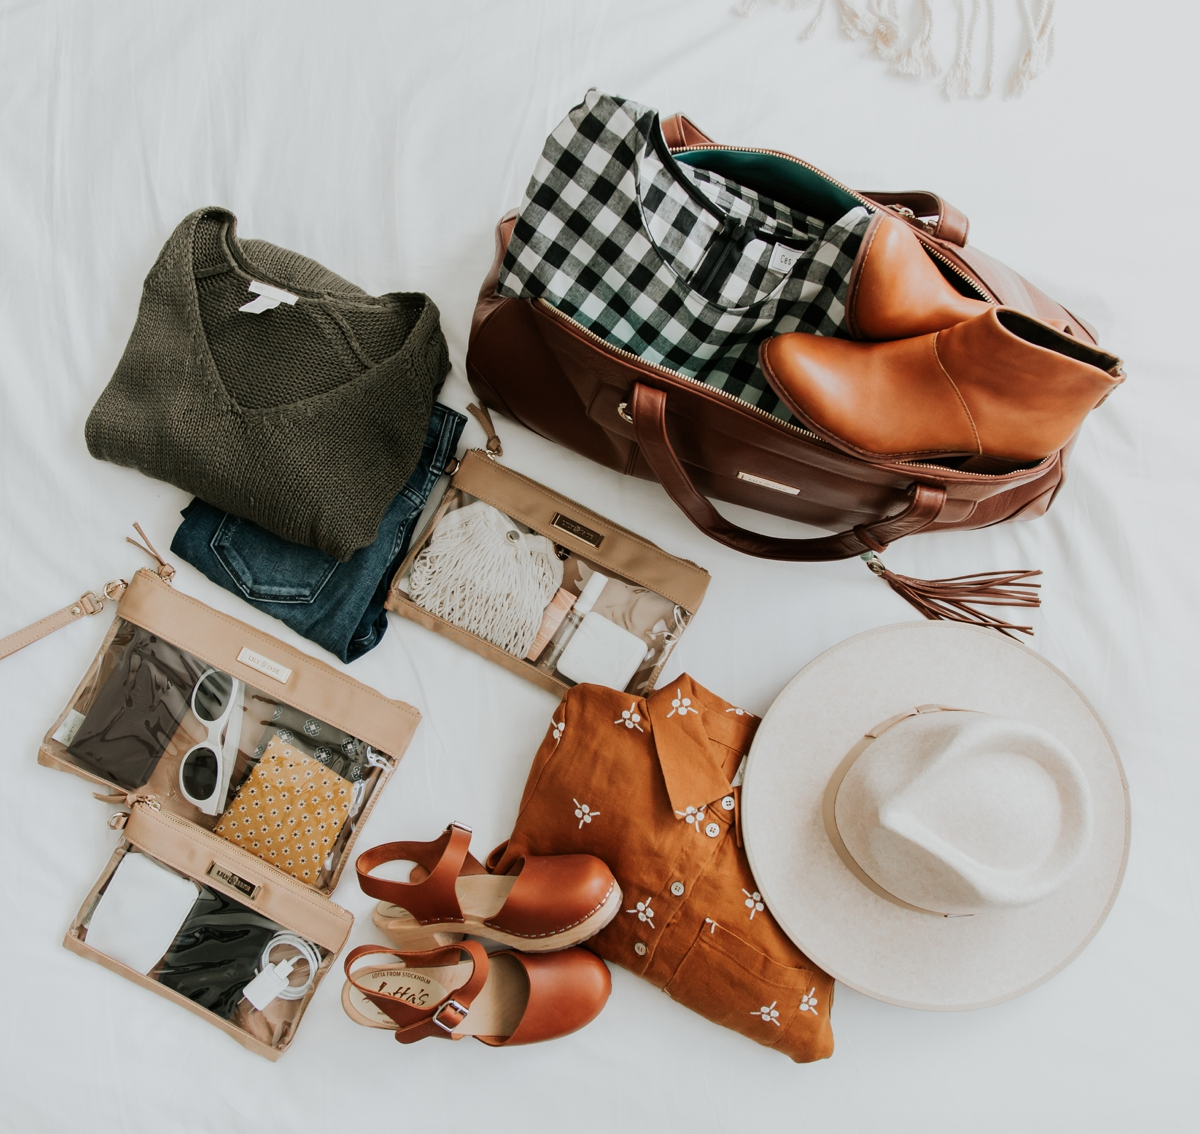 Kandis_Marino_Photography_Lifestyle_Lily_Jade_Mom_Blogger_Diaper_Bag_Weekender_Bag_0002.jpg